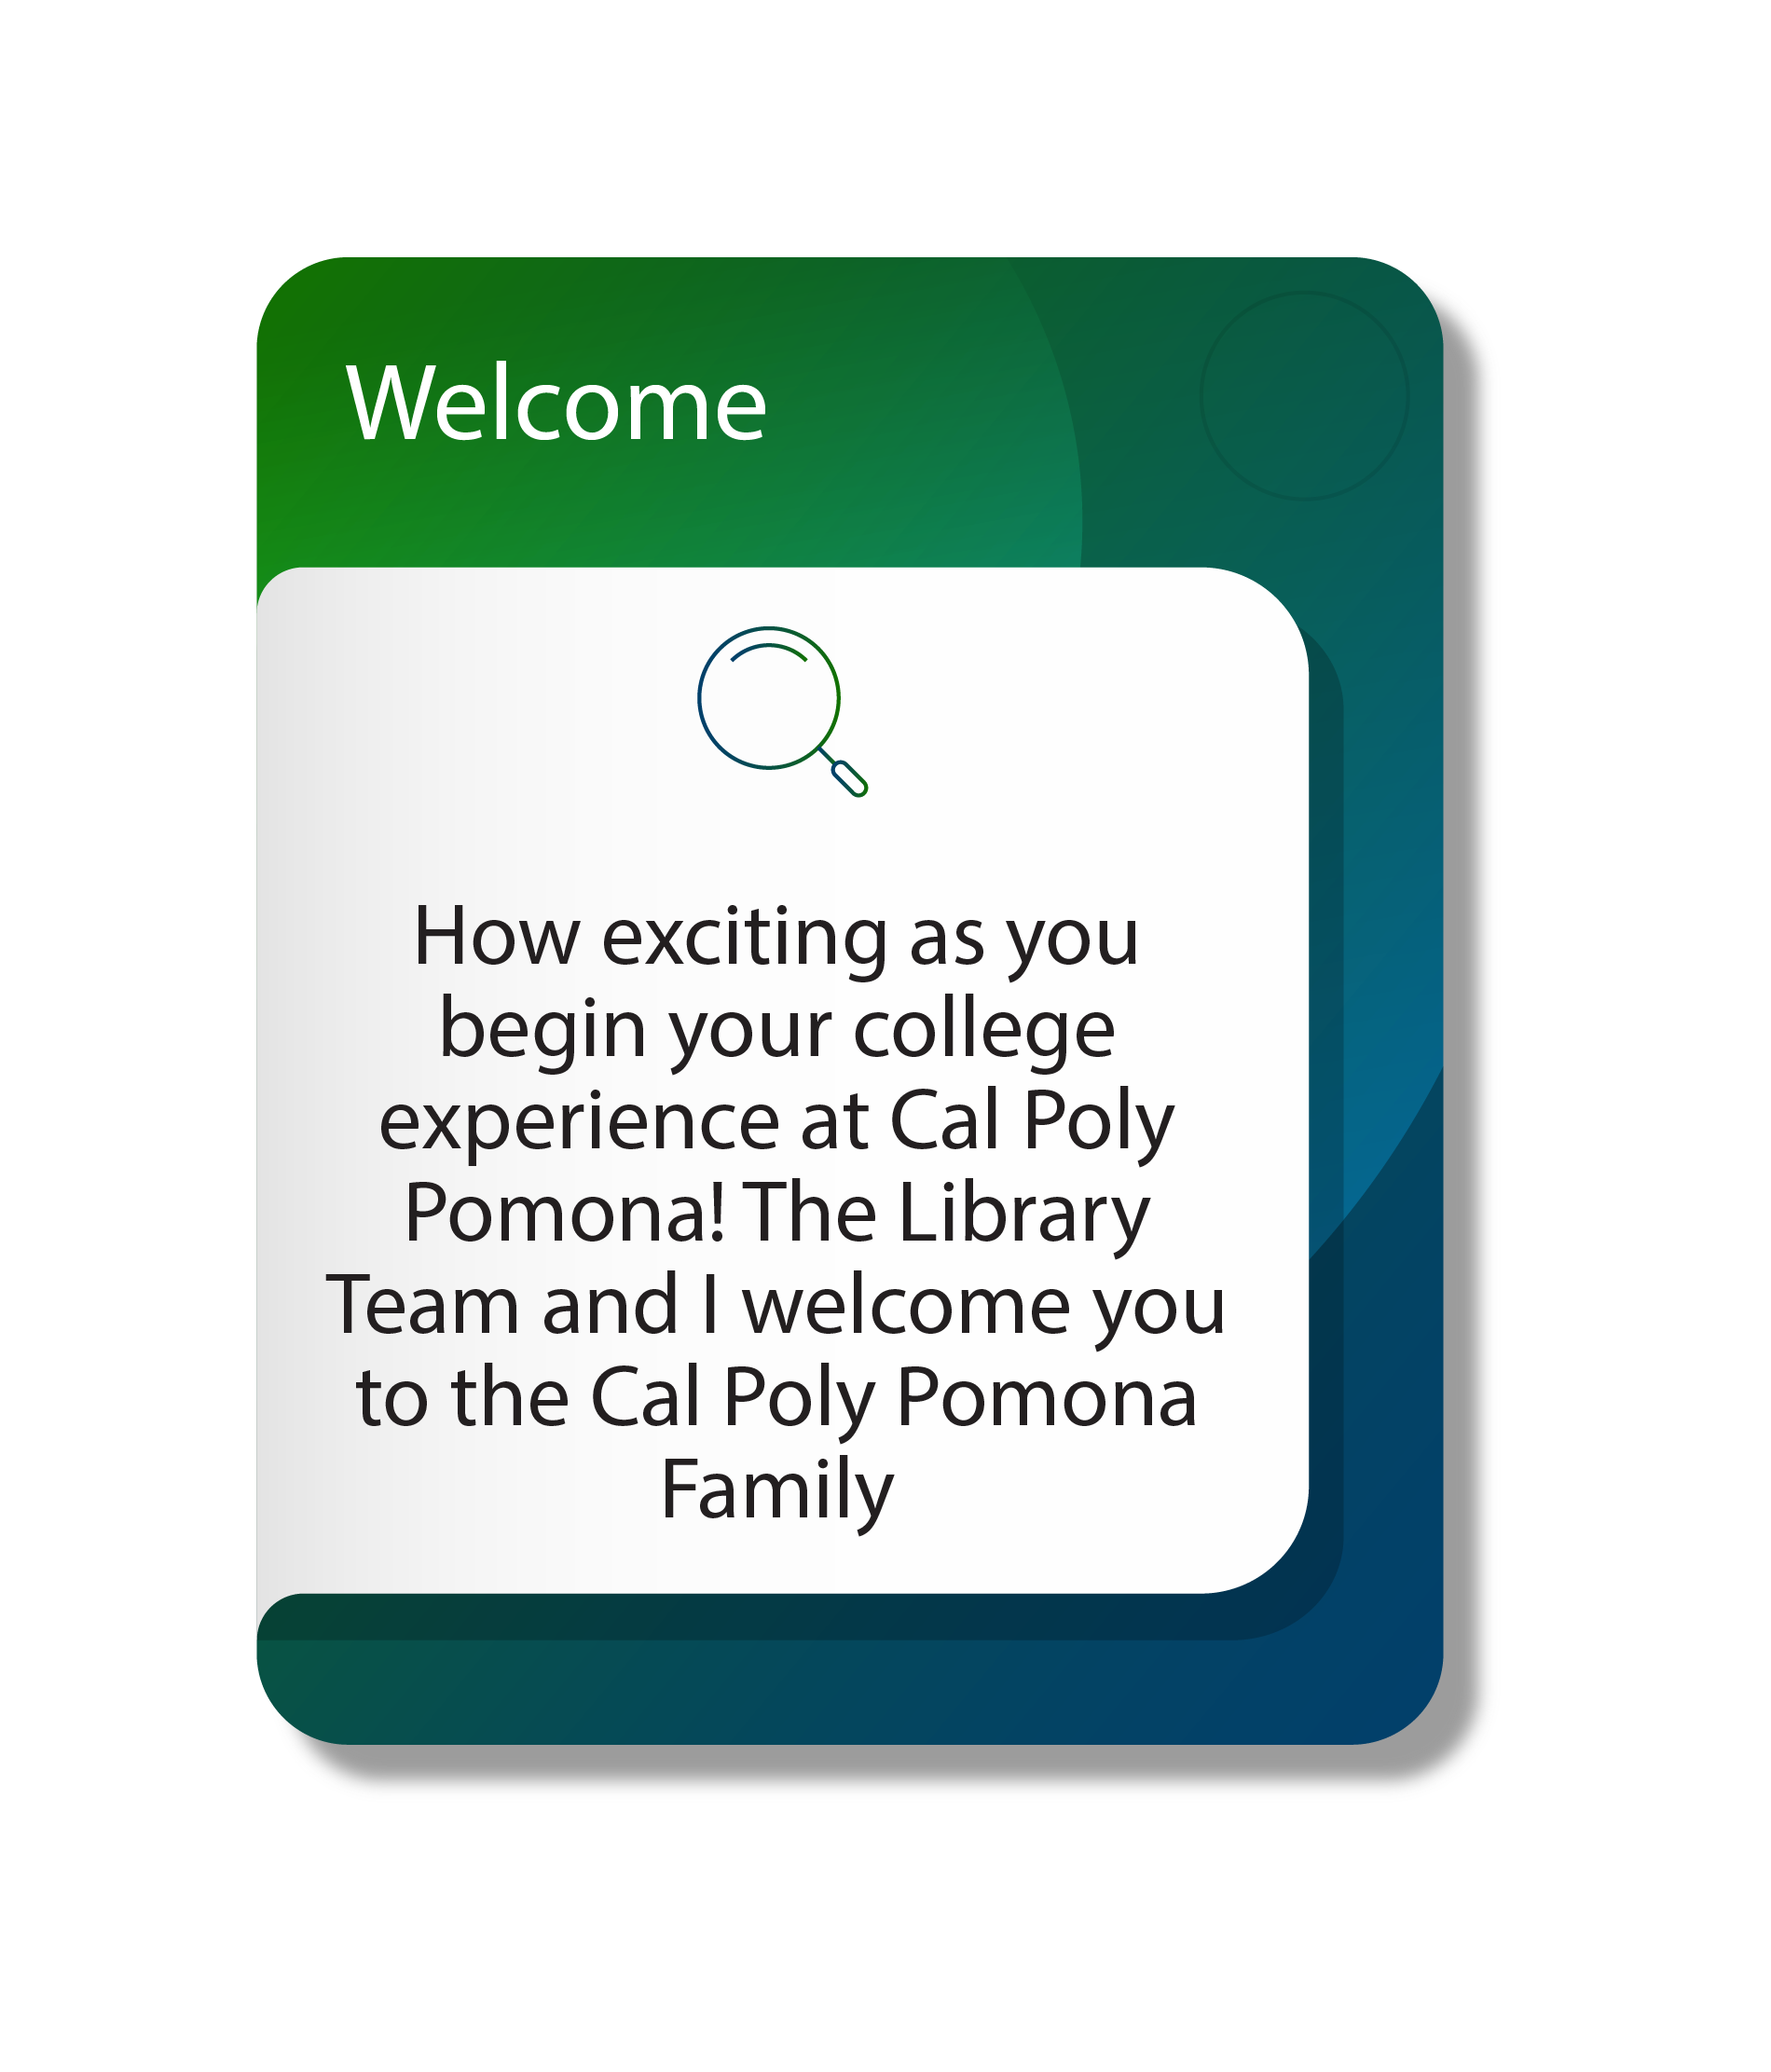 Welcome, how exciting as you begin your college experience at Cal Poly Pomona! The Library Team and I welcome you to the Cal Poly Pomona Family